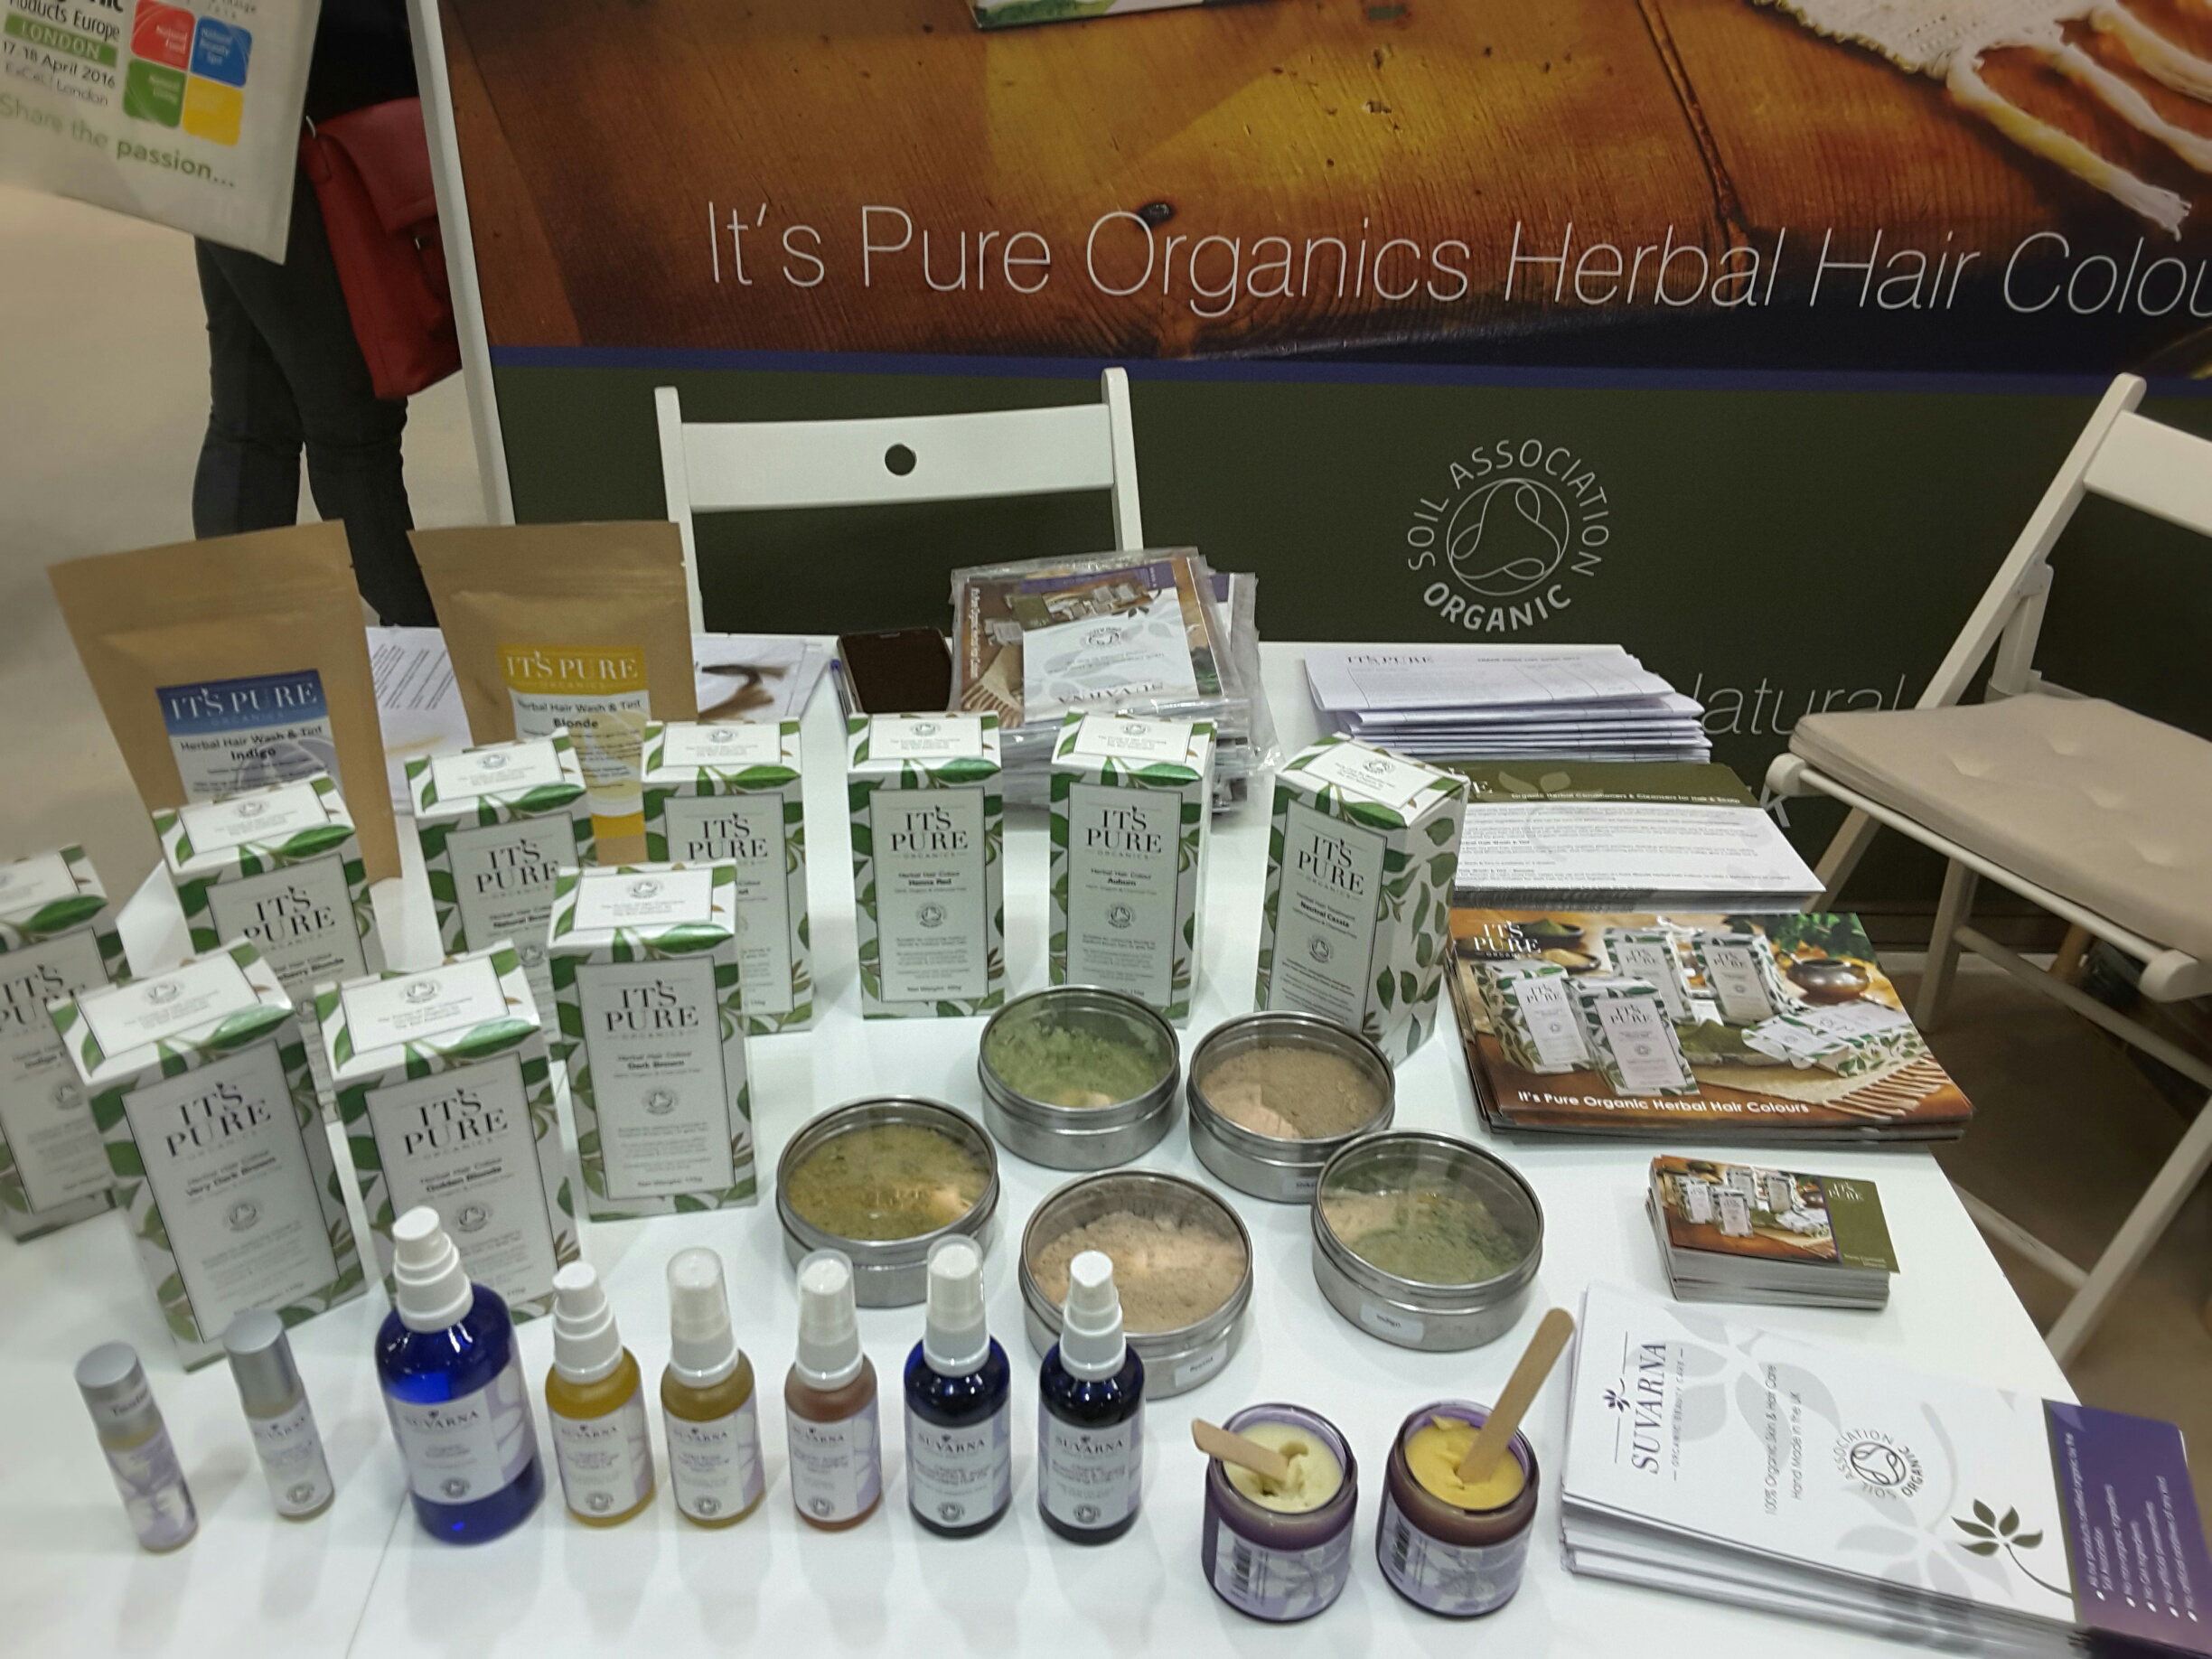 Our Products at the Trade Show